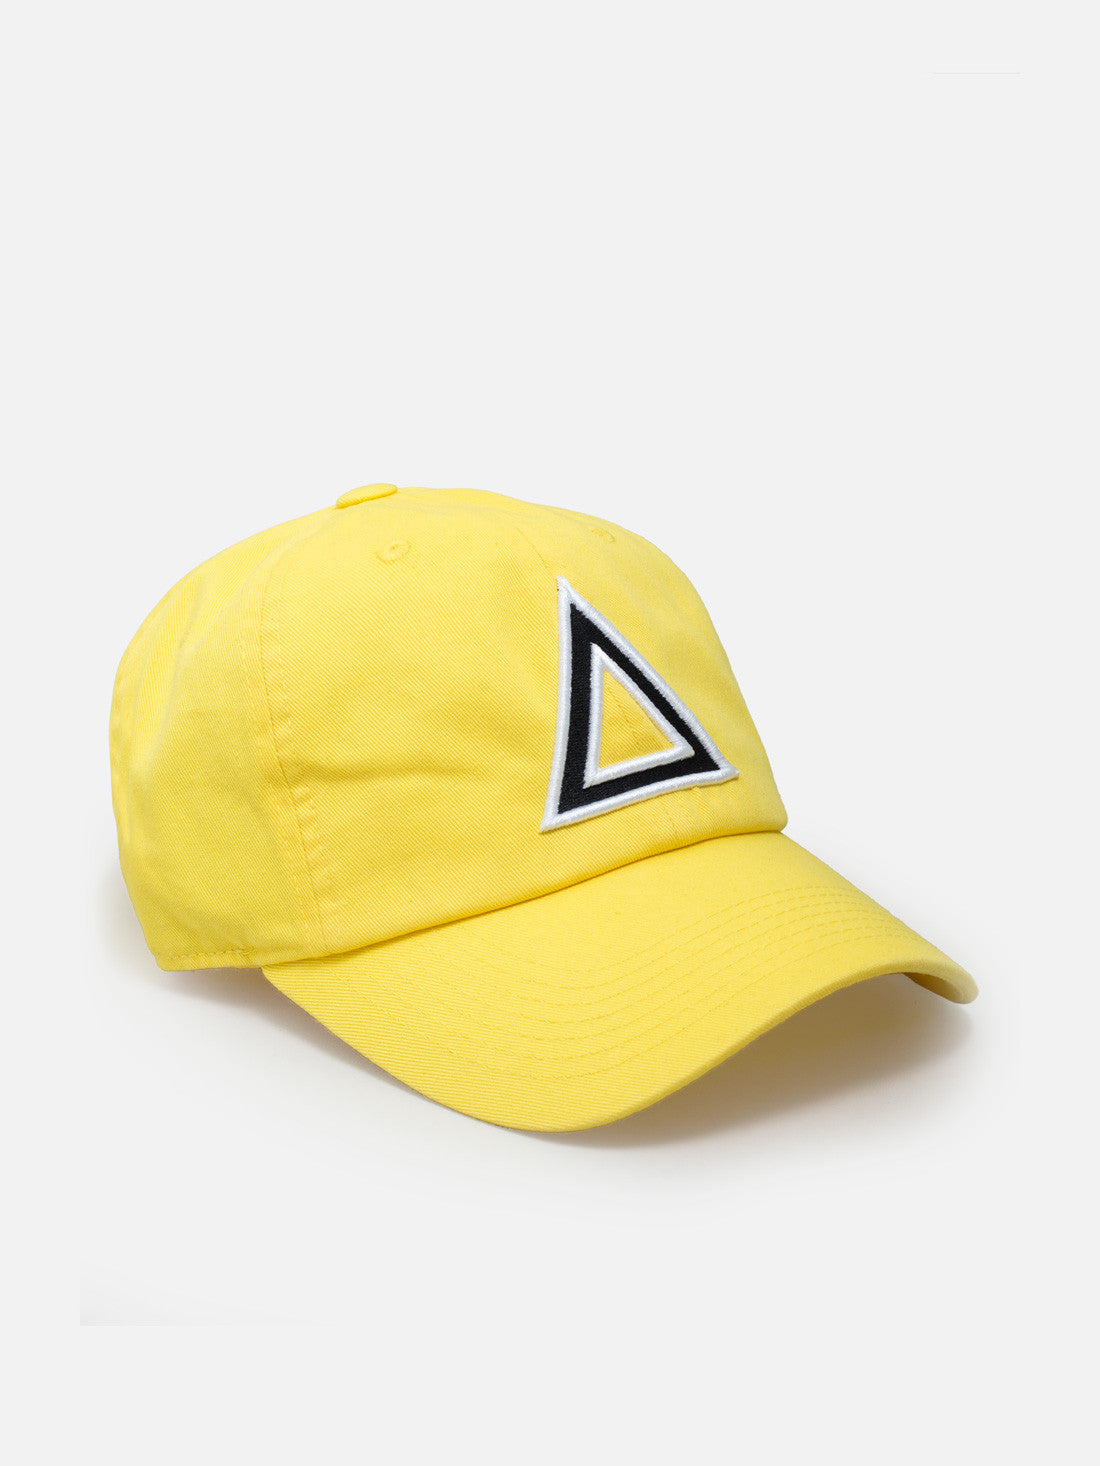 Dad hat yellow - blk/white tri